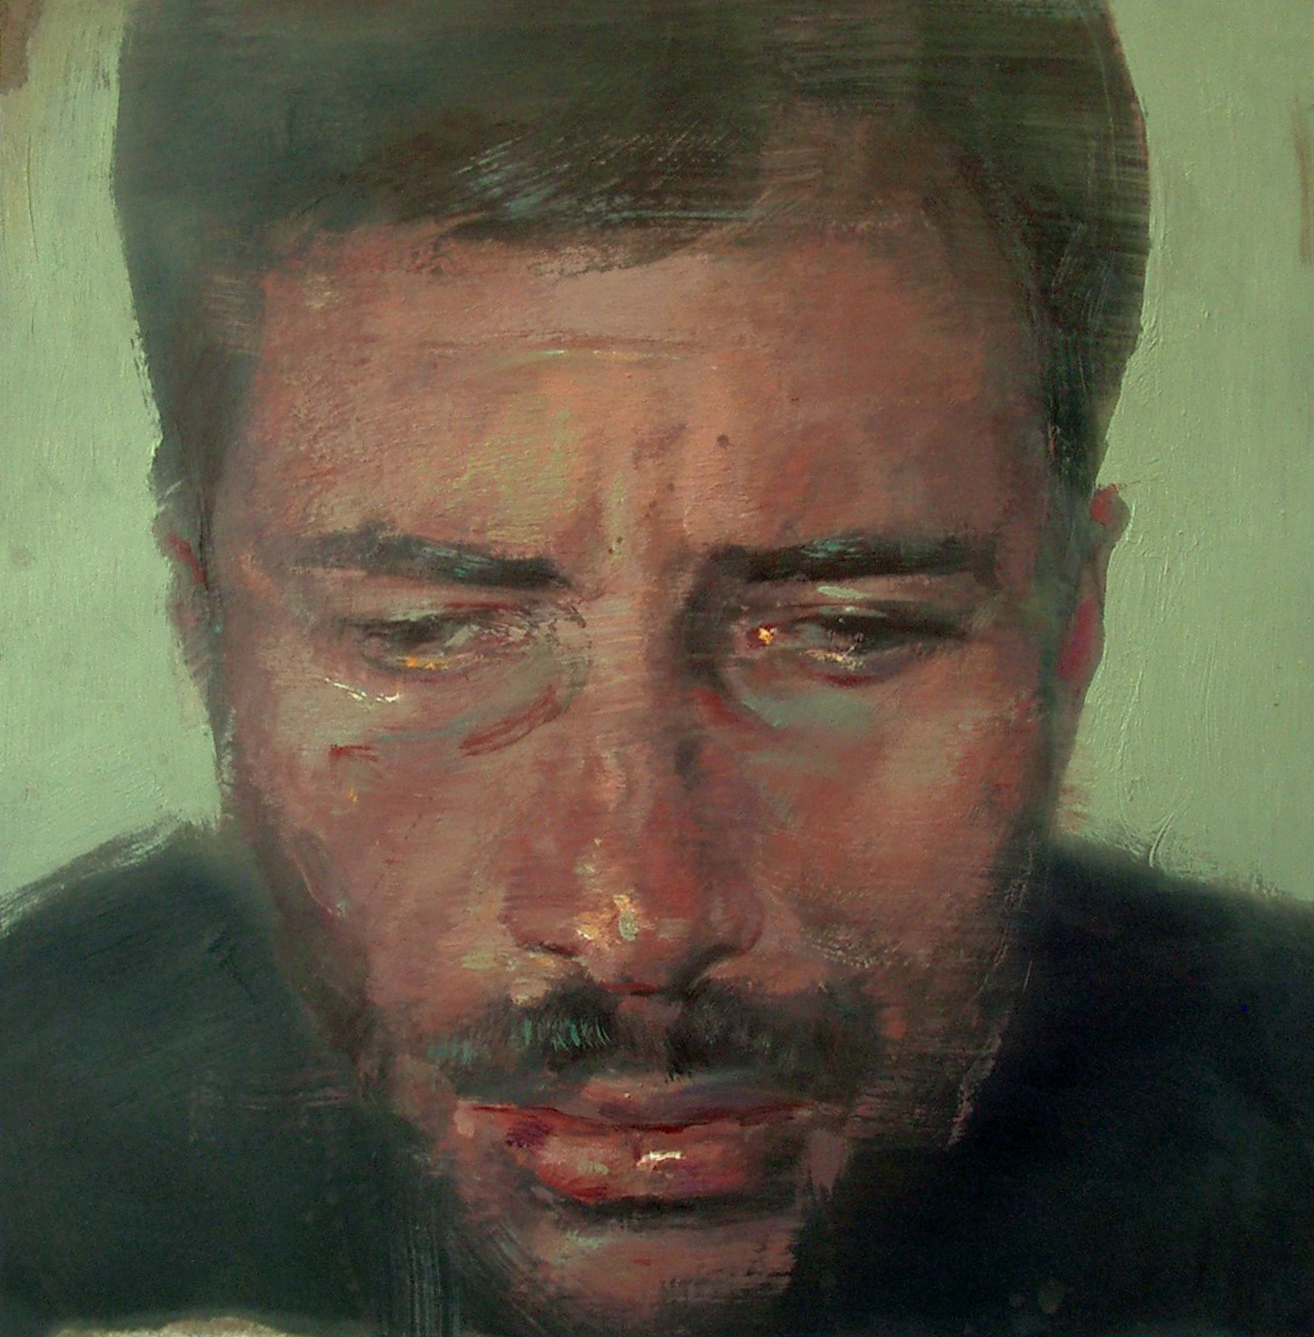 Autoritratto, olio su carta, 2006